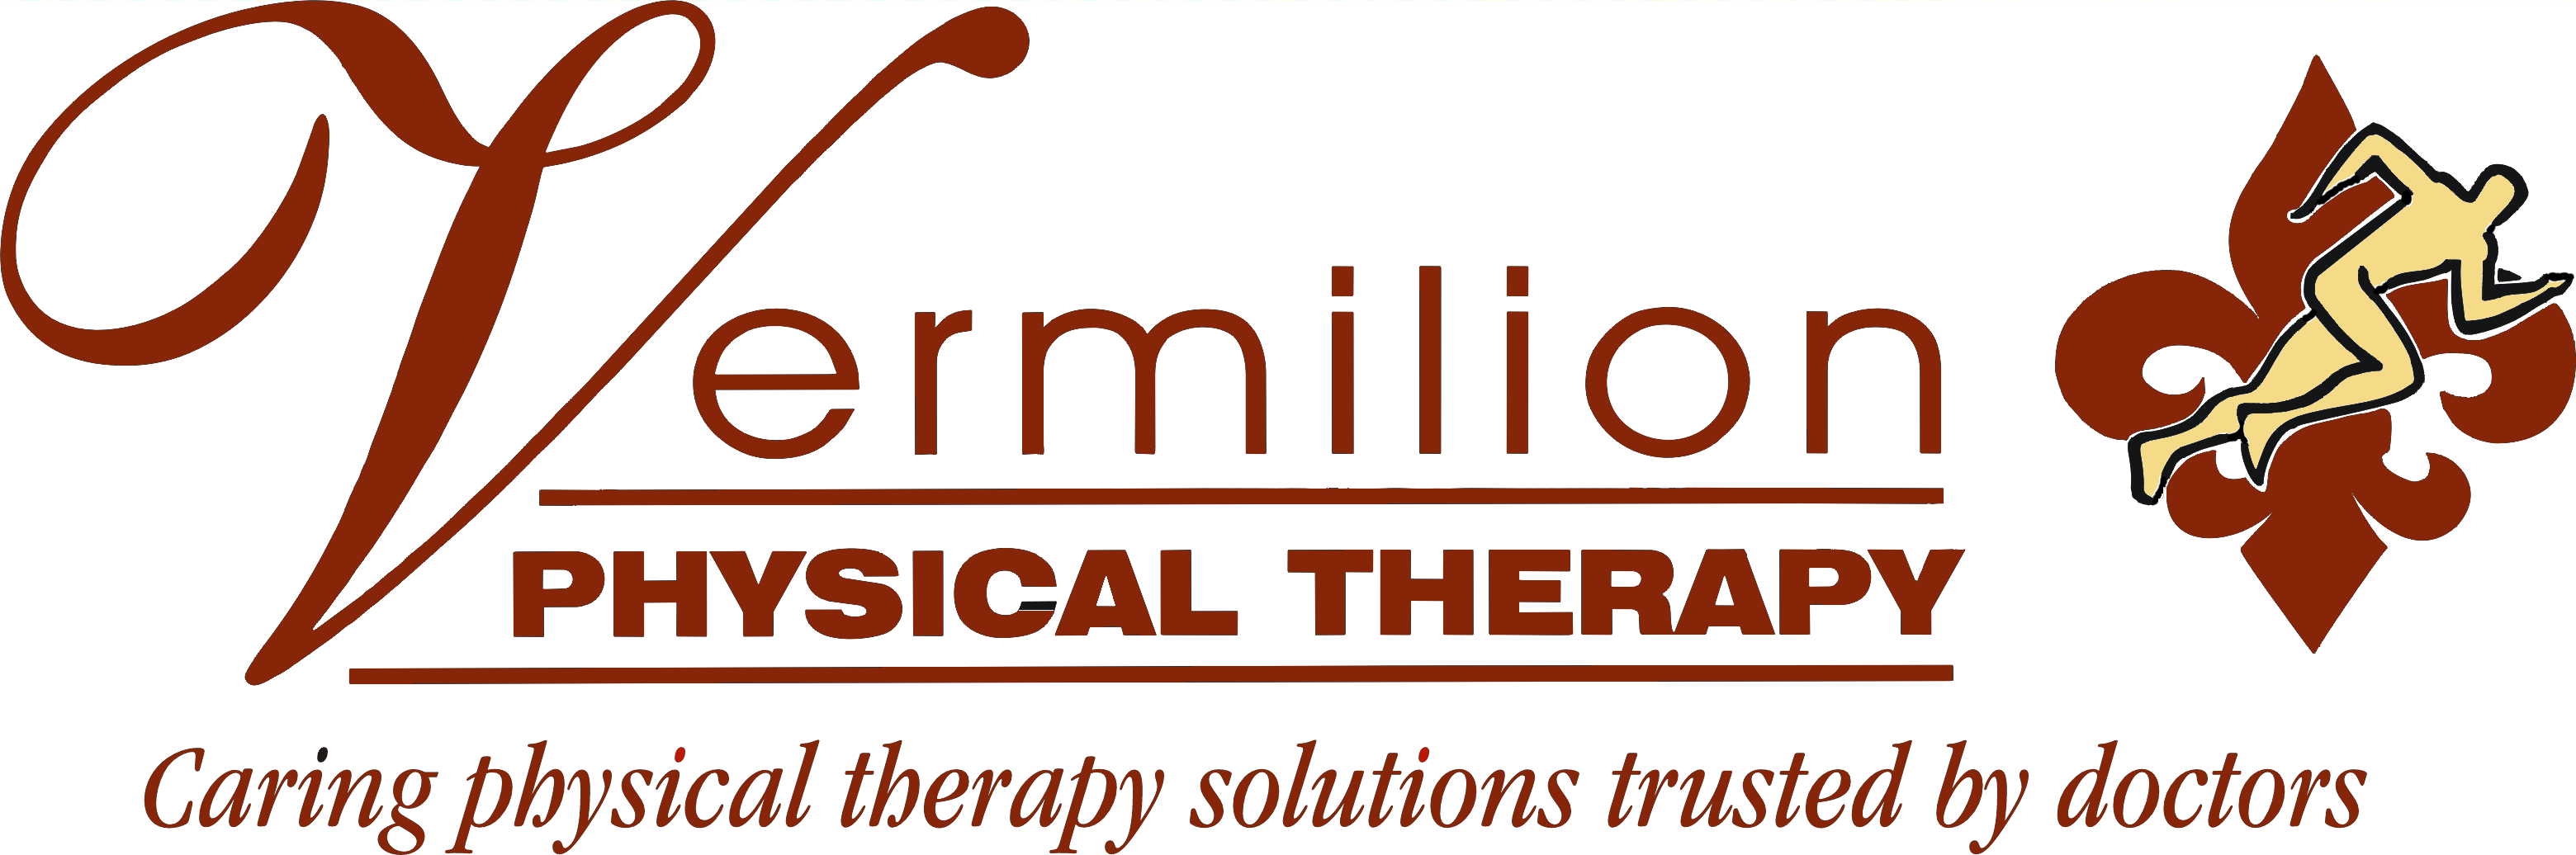 job sports related care vermilion physical therapy